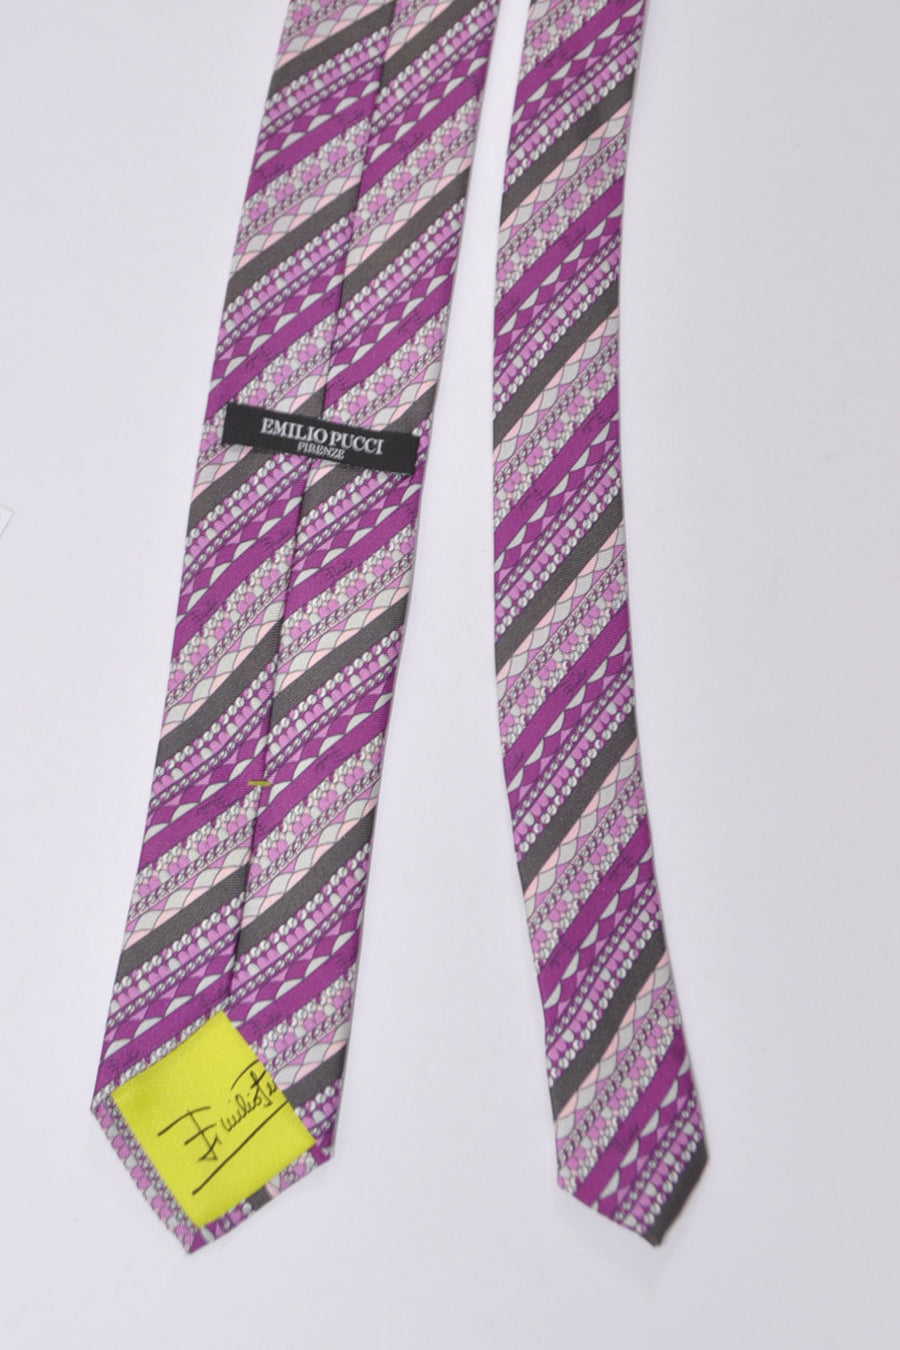 Emilio Pucci Skinny Tie Pink Purple Stripes